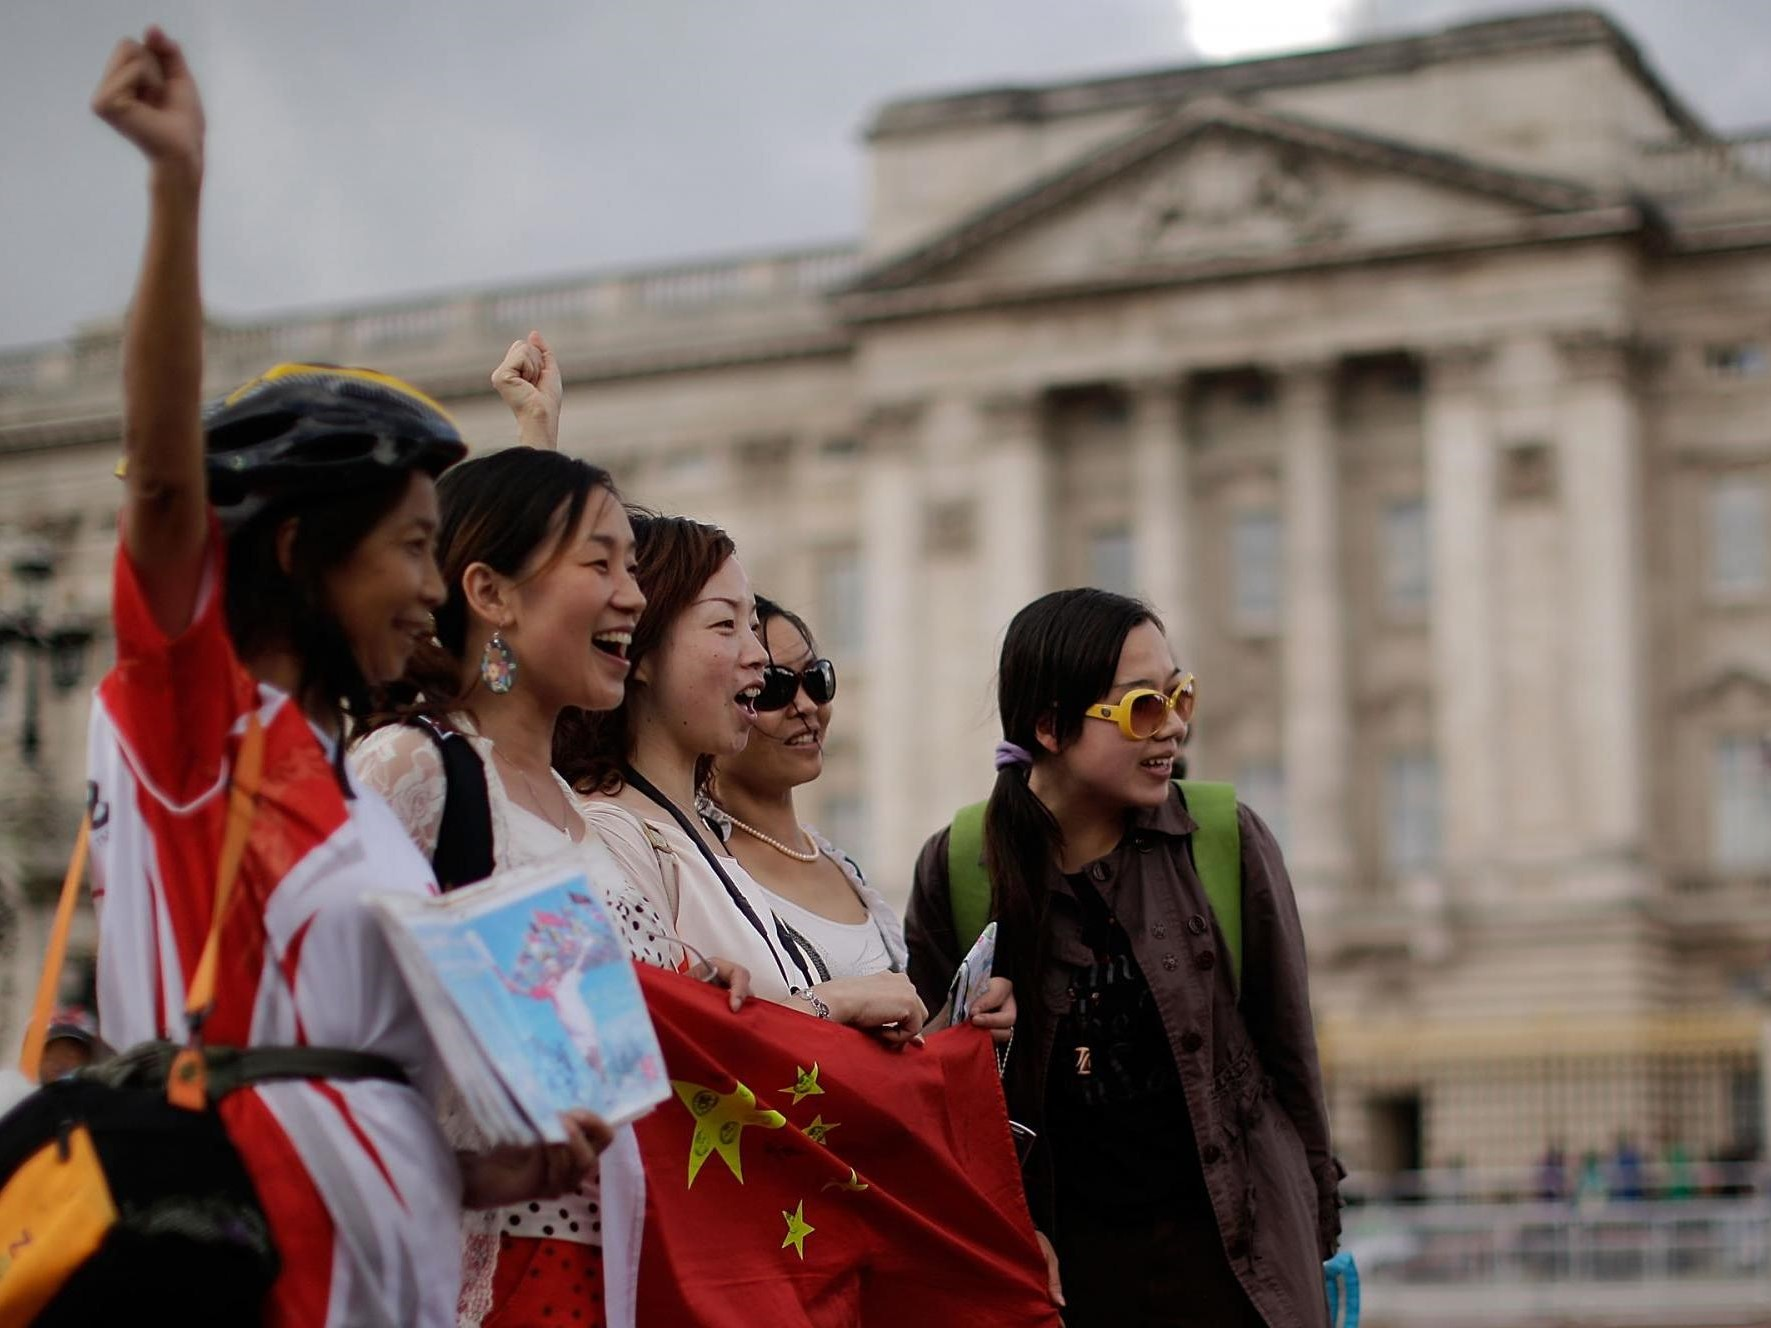 Meet the requirements of Chinese tourists: check list